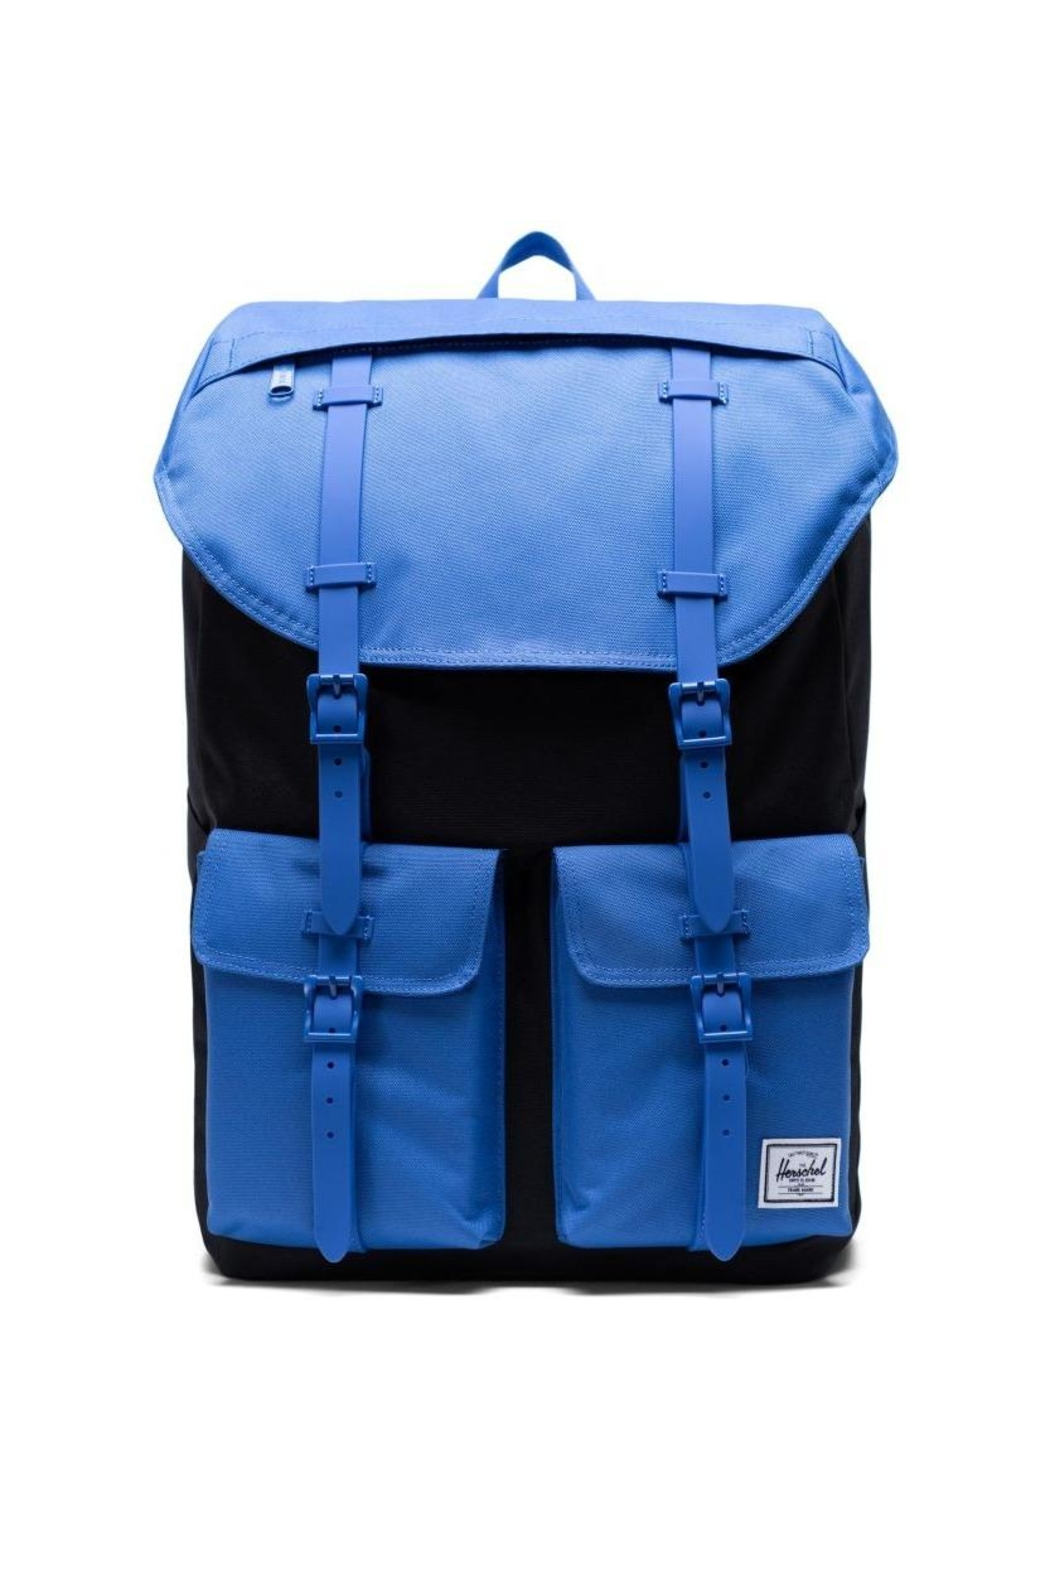 Herschel Supply Co. Blue Buckingham Backpack - Front Cropped Image